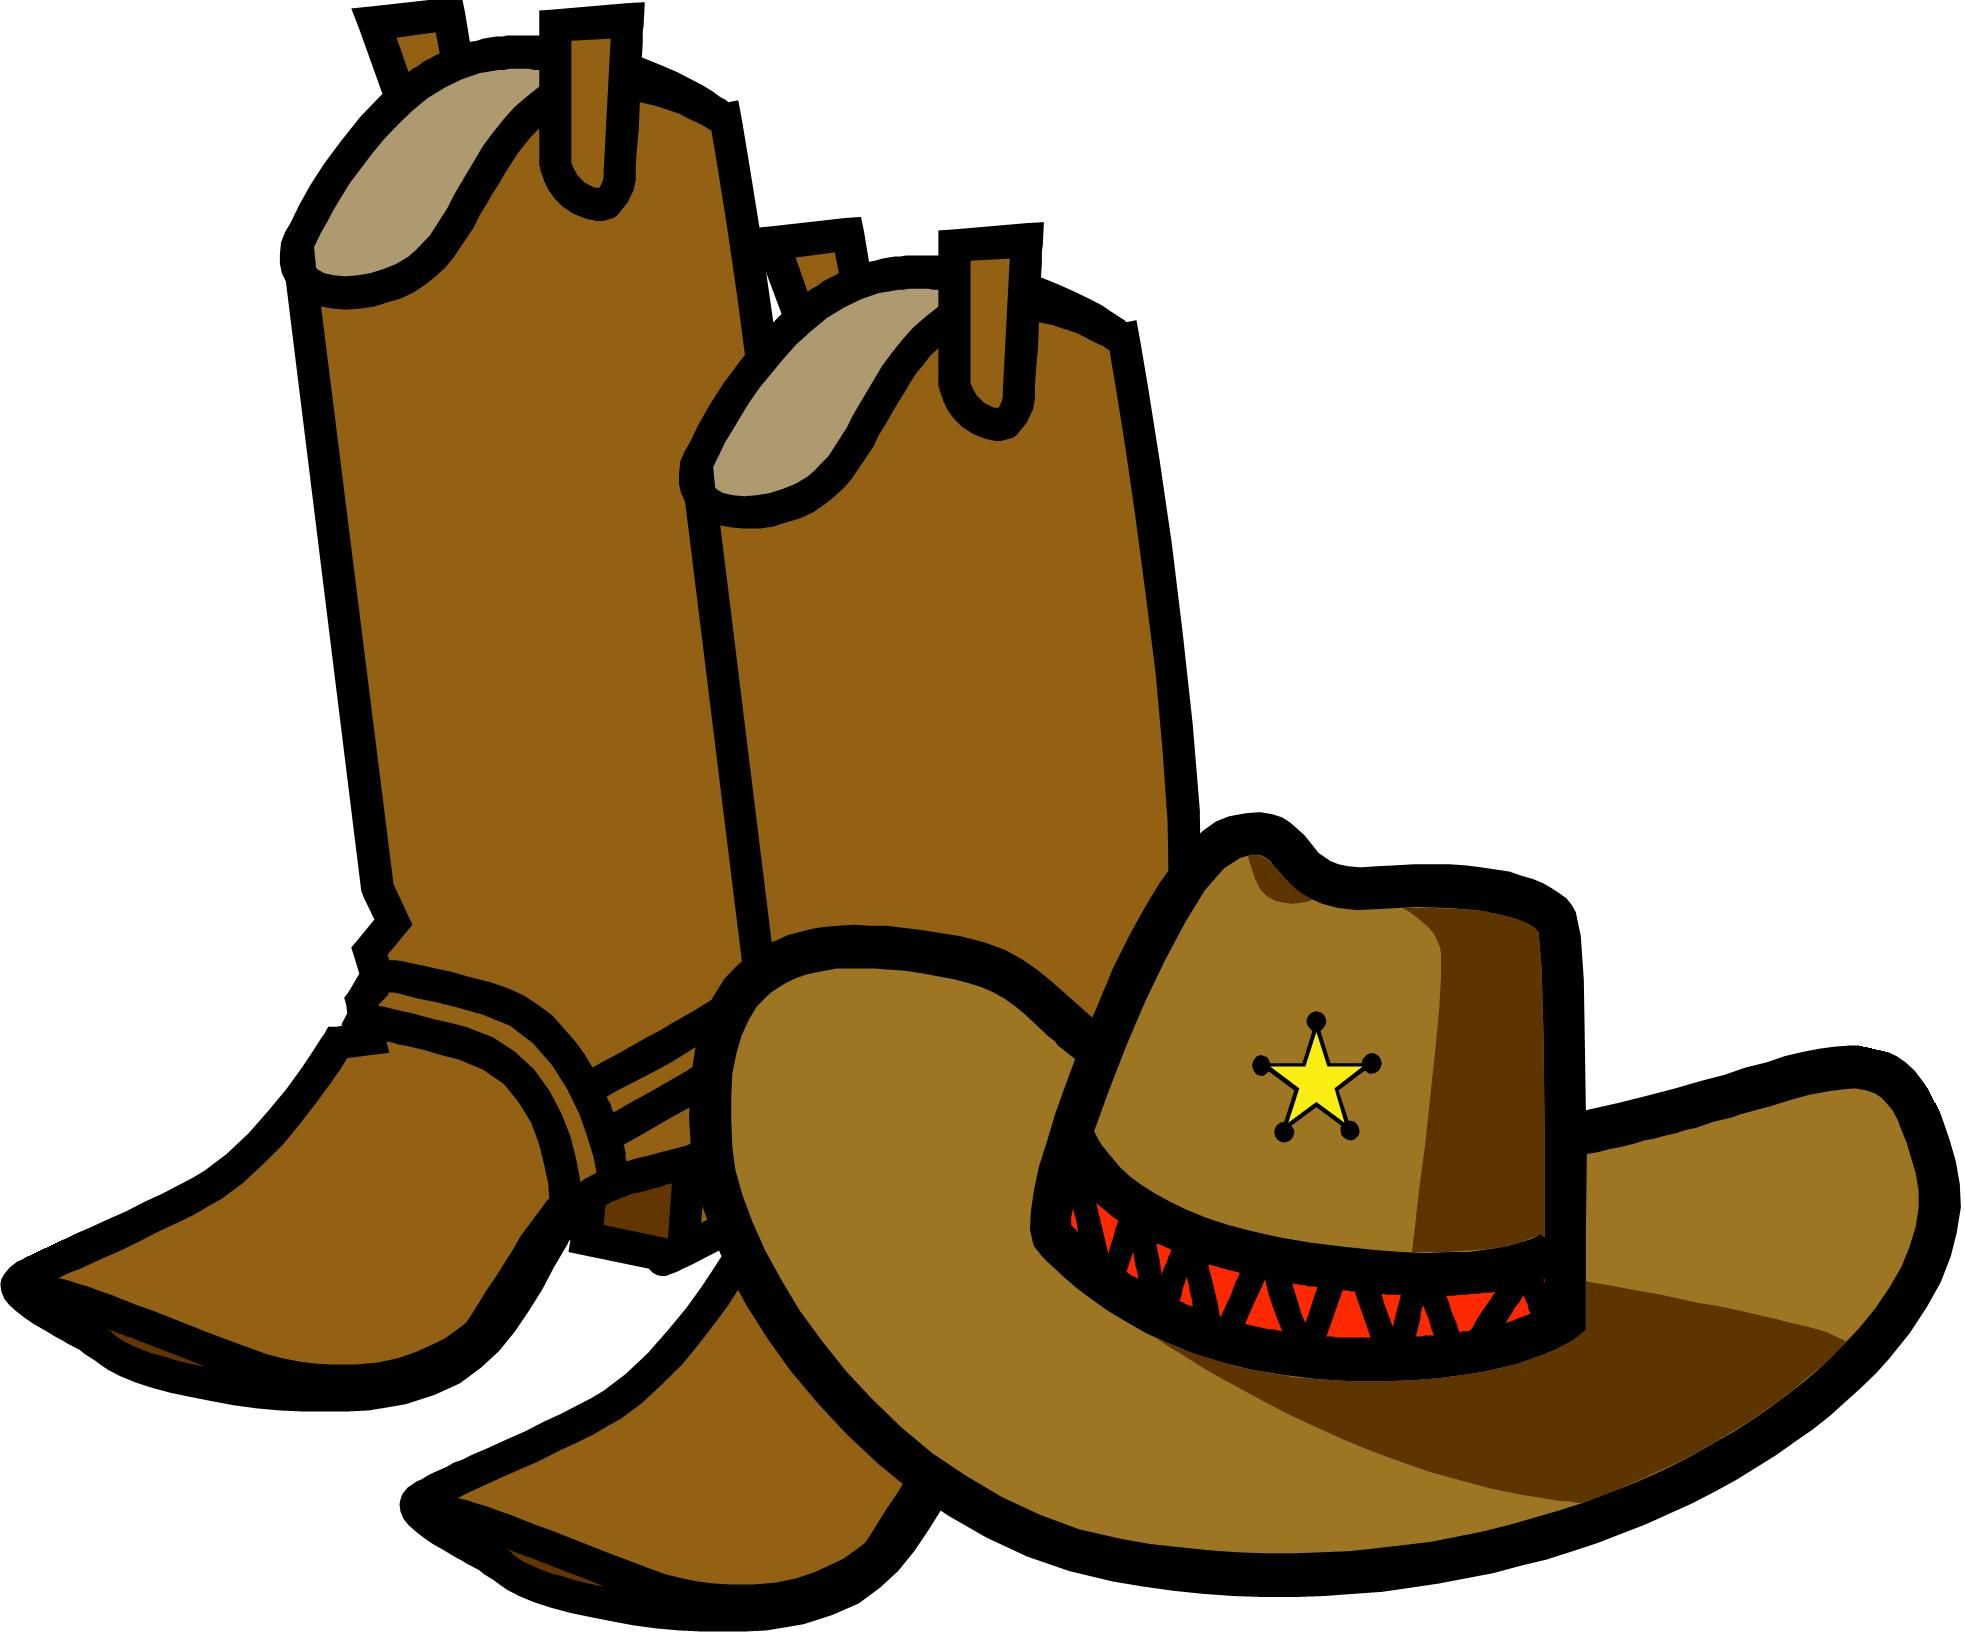 Wild west clipart western bbq. Cowboy image free cartoon